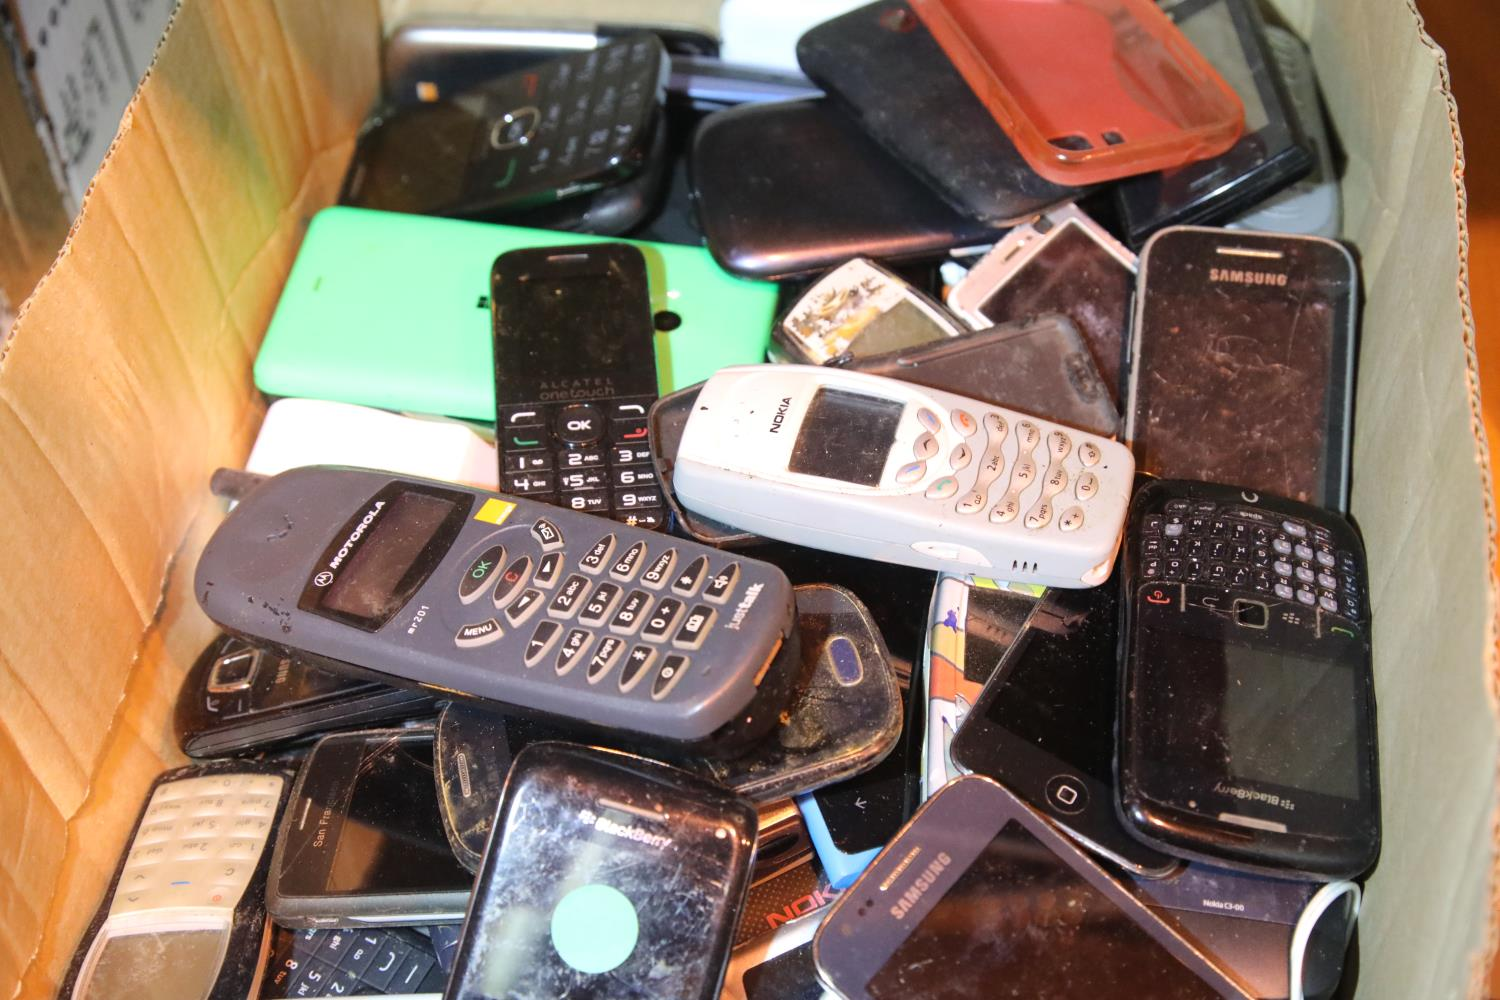 Tray of mixed mobile phones to include Samsung mini, Nokia etc. Not available for in-house P&P